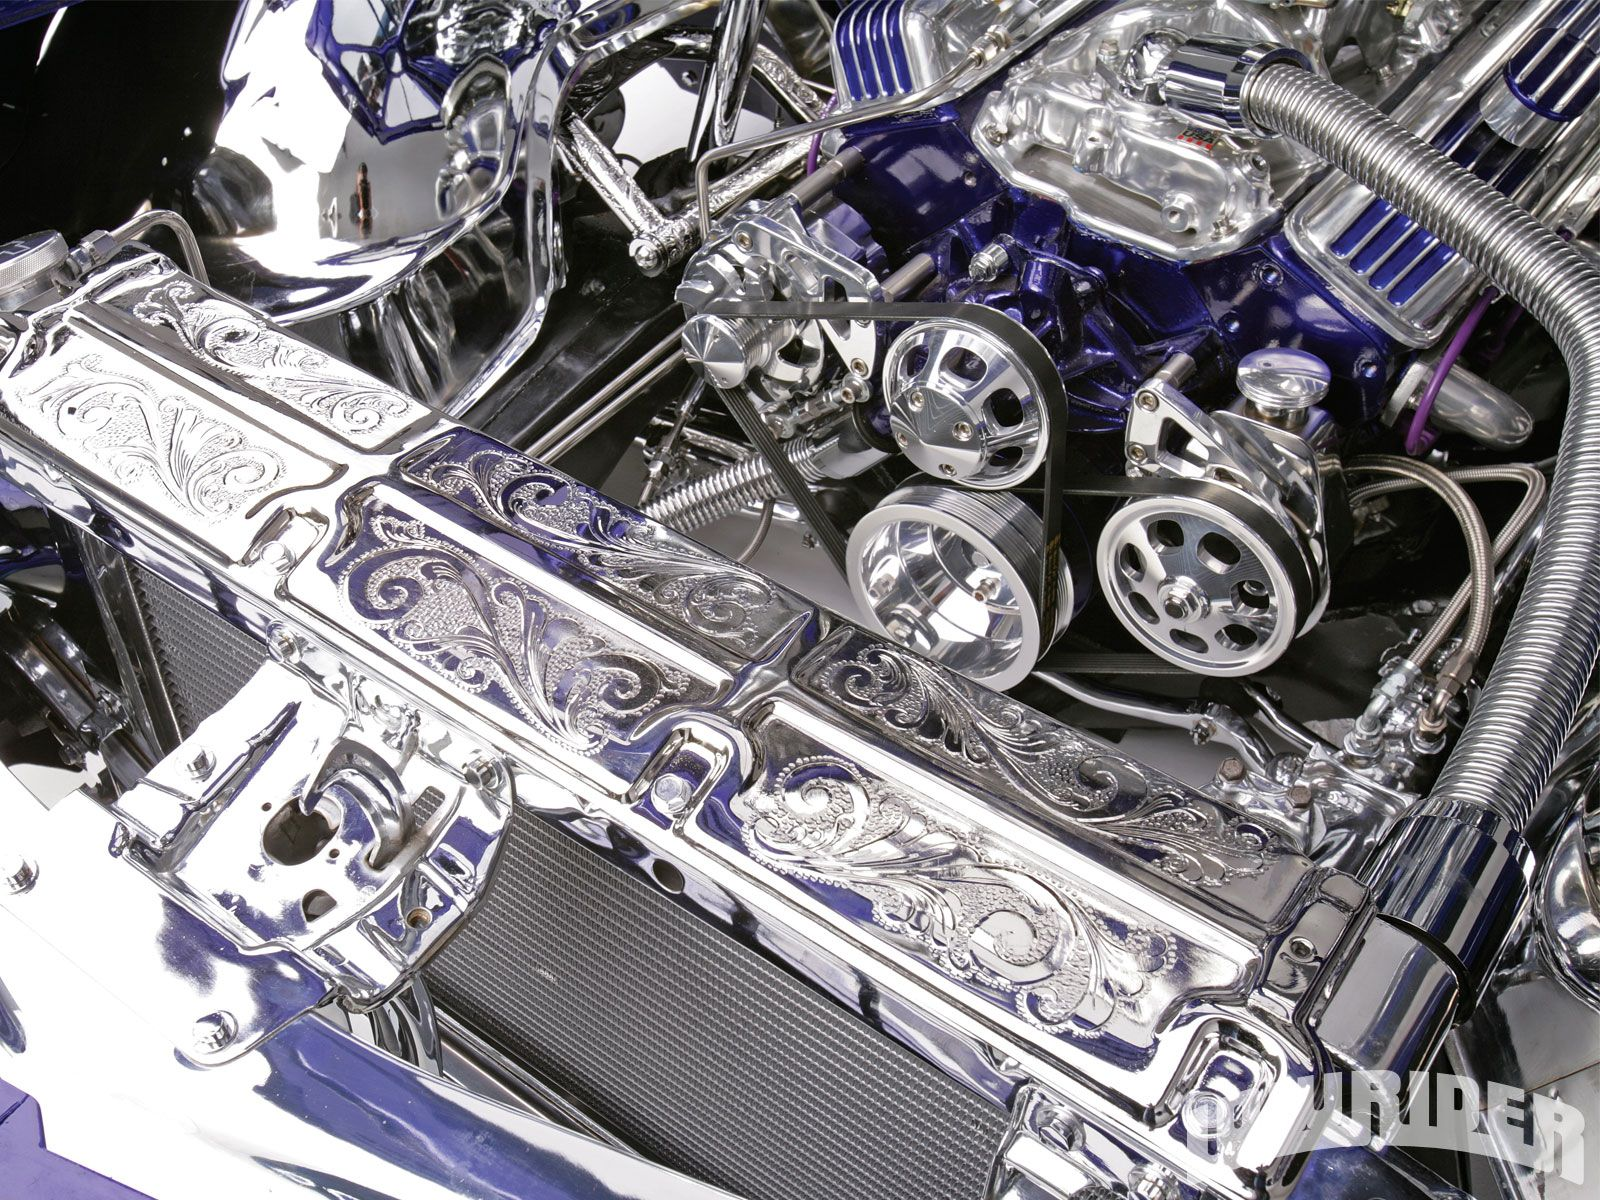 1959 lincoln continental convertible submited images pic2fly - Http St Lowrider Com Uploads Sites 7